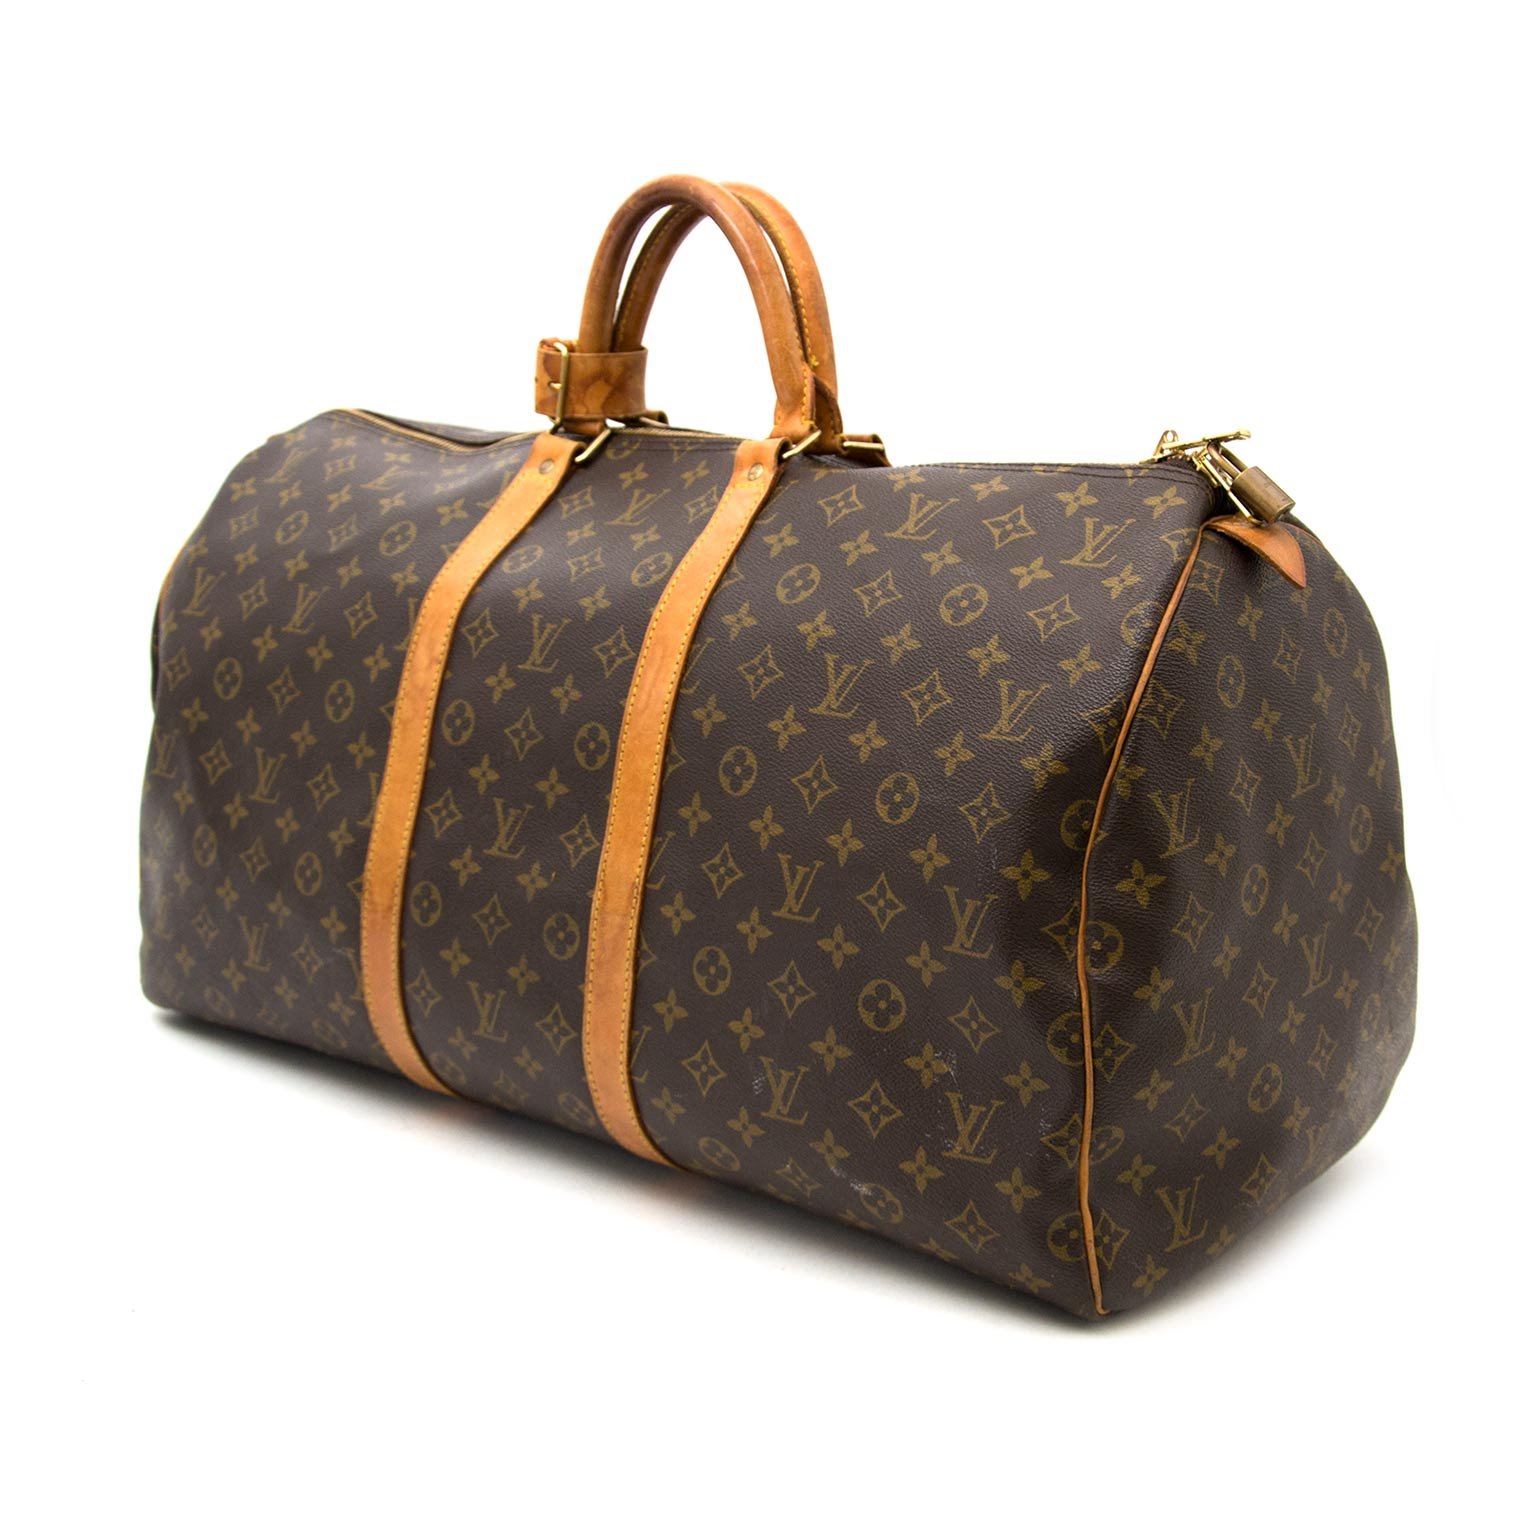 1e6db3a7b5f6 ... Buy safe and secure online at labellov.com for the best price louis  vuitton keepall